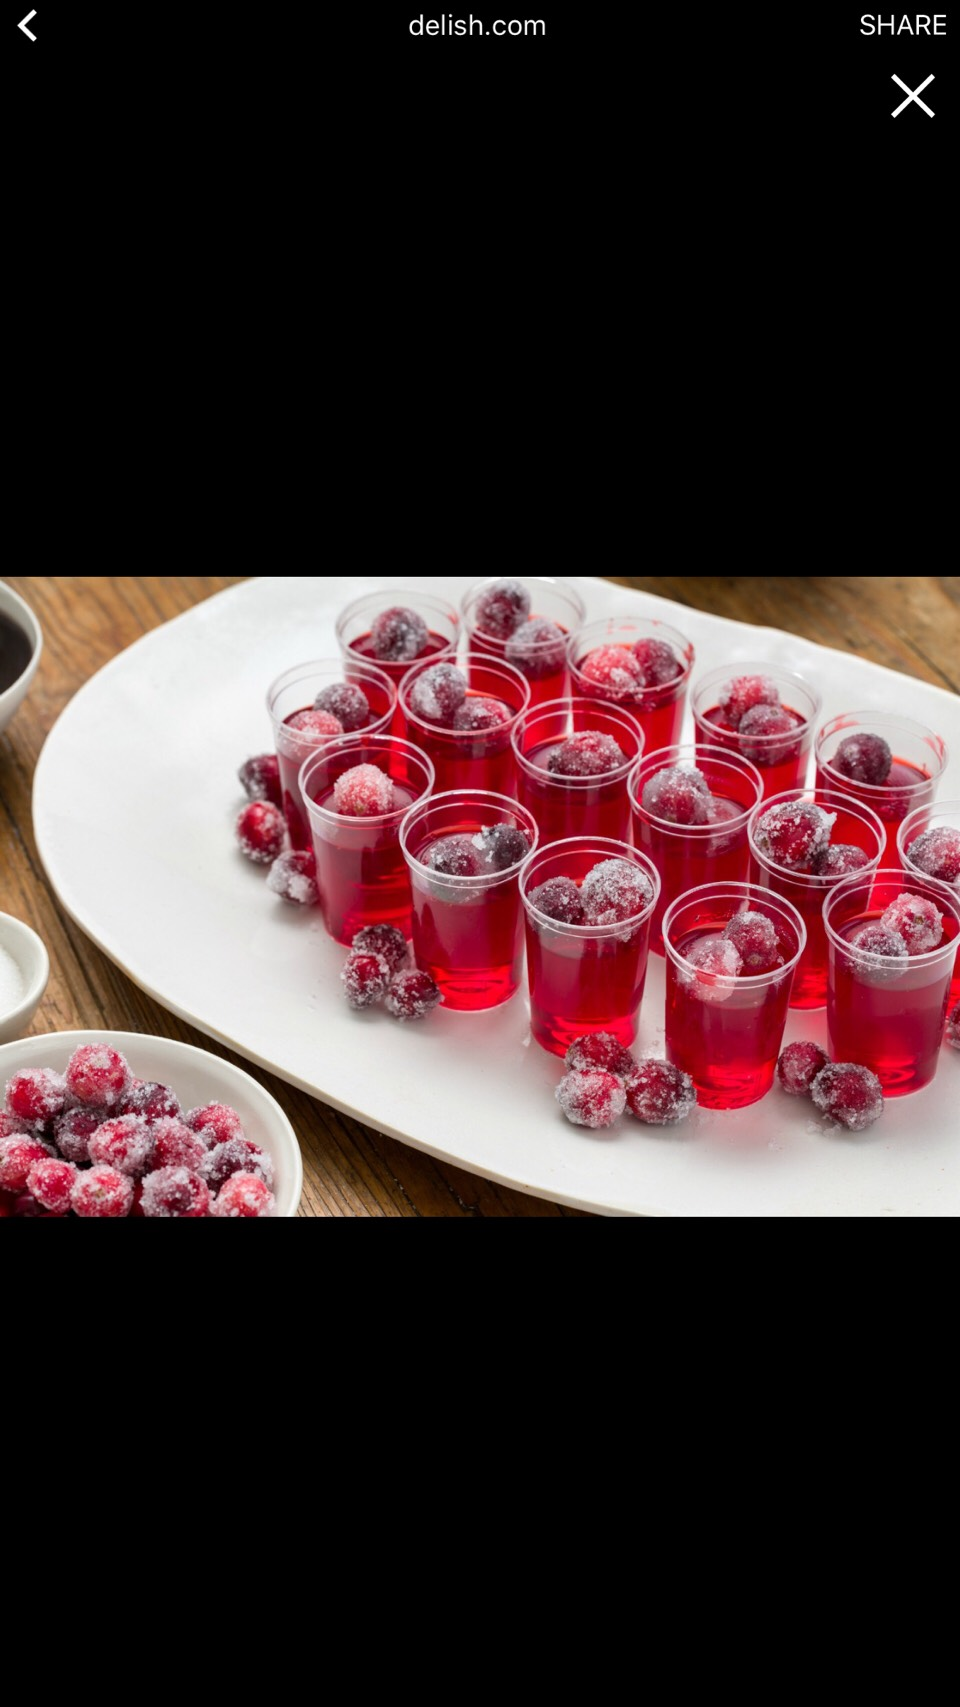 1.Remove the cranberries from the syrup using a slotted spoon, tapping away excess syrup. Place them in a gallon-size resealable plastic bag, pour the remaining sugar on top. Seal the bag,shake the cranberries to coat them.Spread out over a large plate,place in the refrigerator for 20-30 minutes